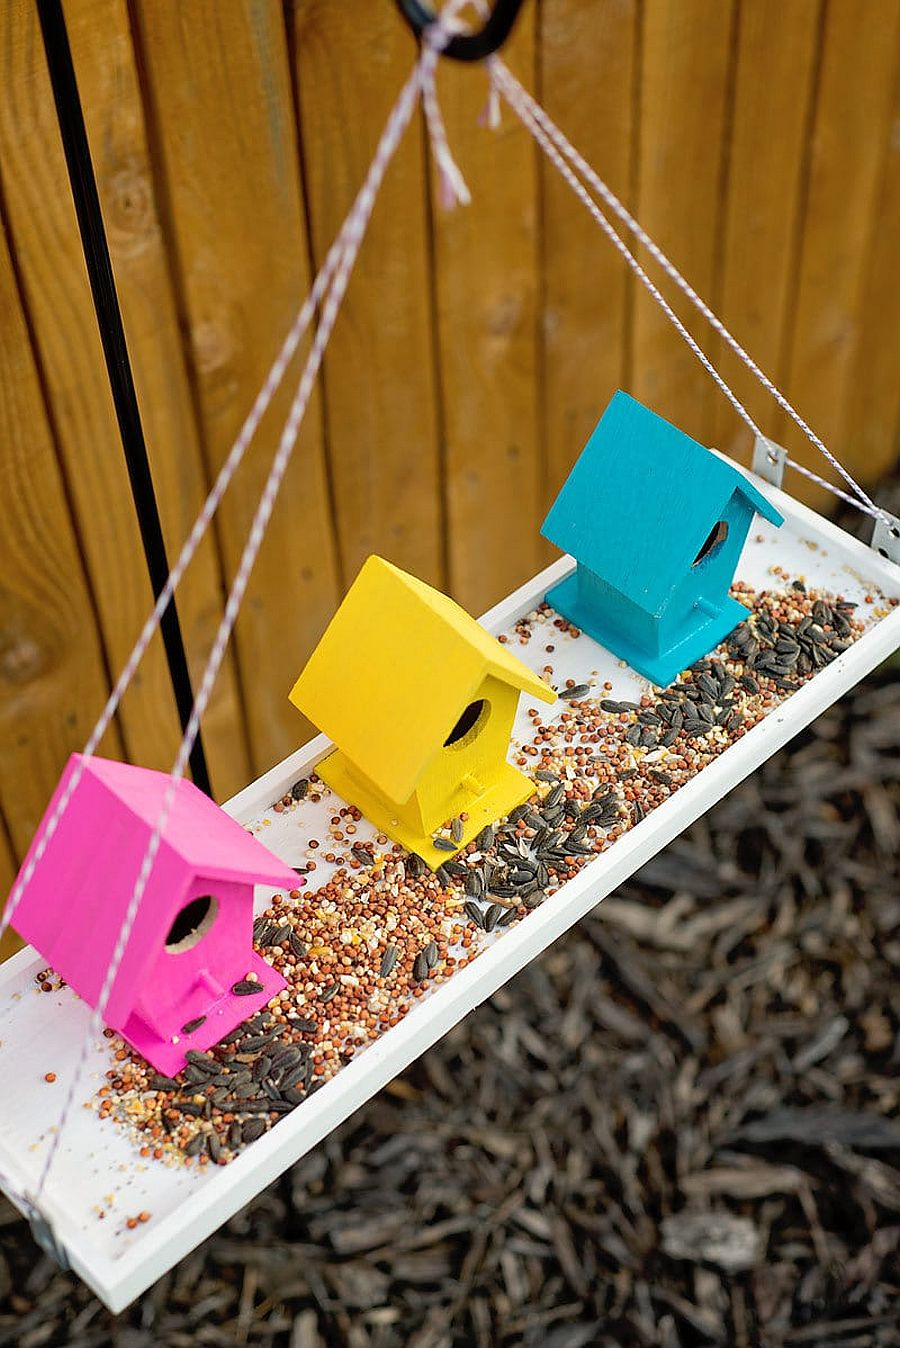 1559675286 674 40 diy bird feeder ideas for a live garden - 40 DIY Bird Feeder Ideas for a Live Garden